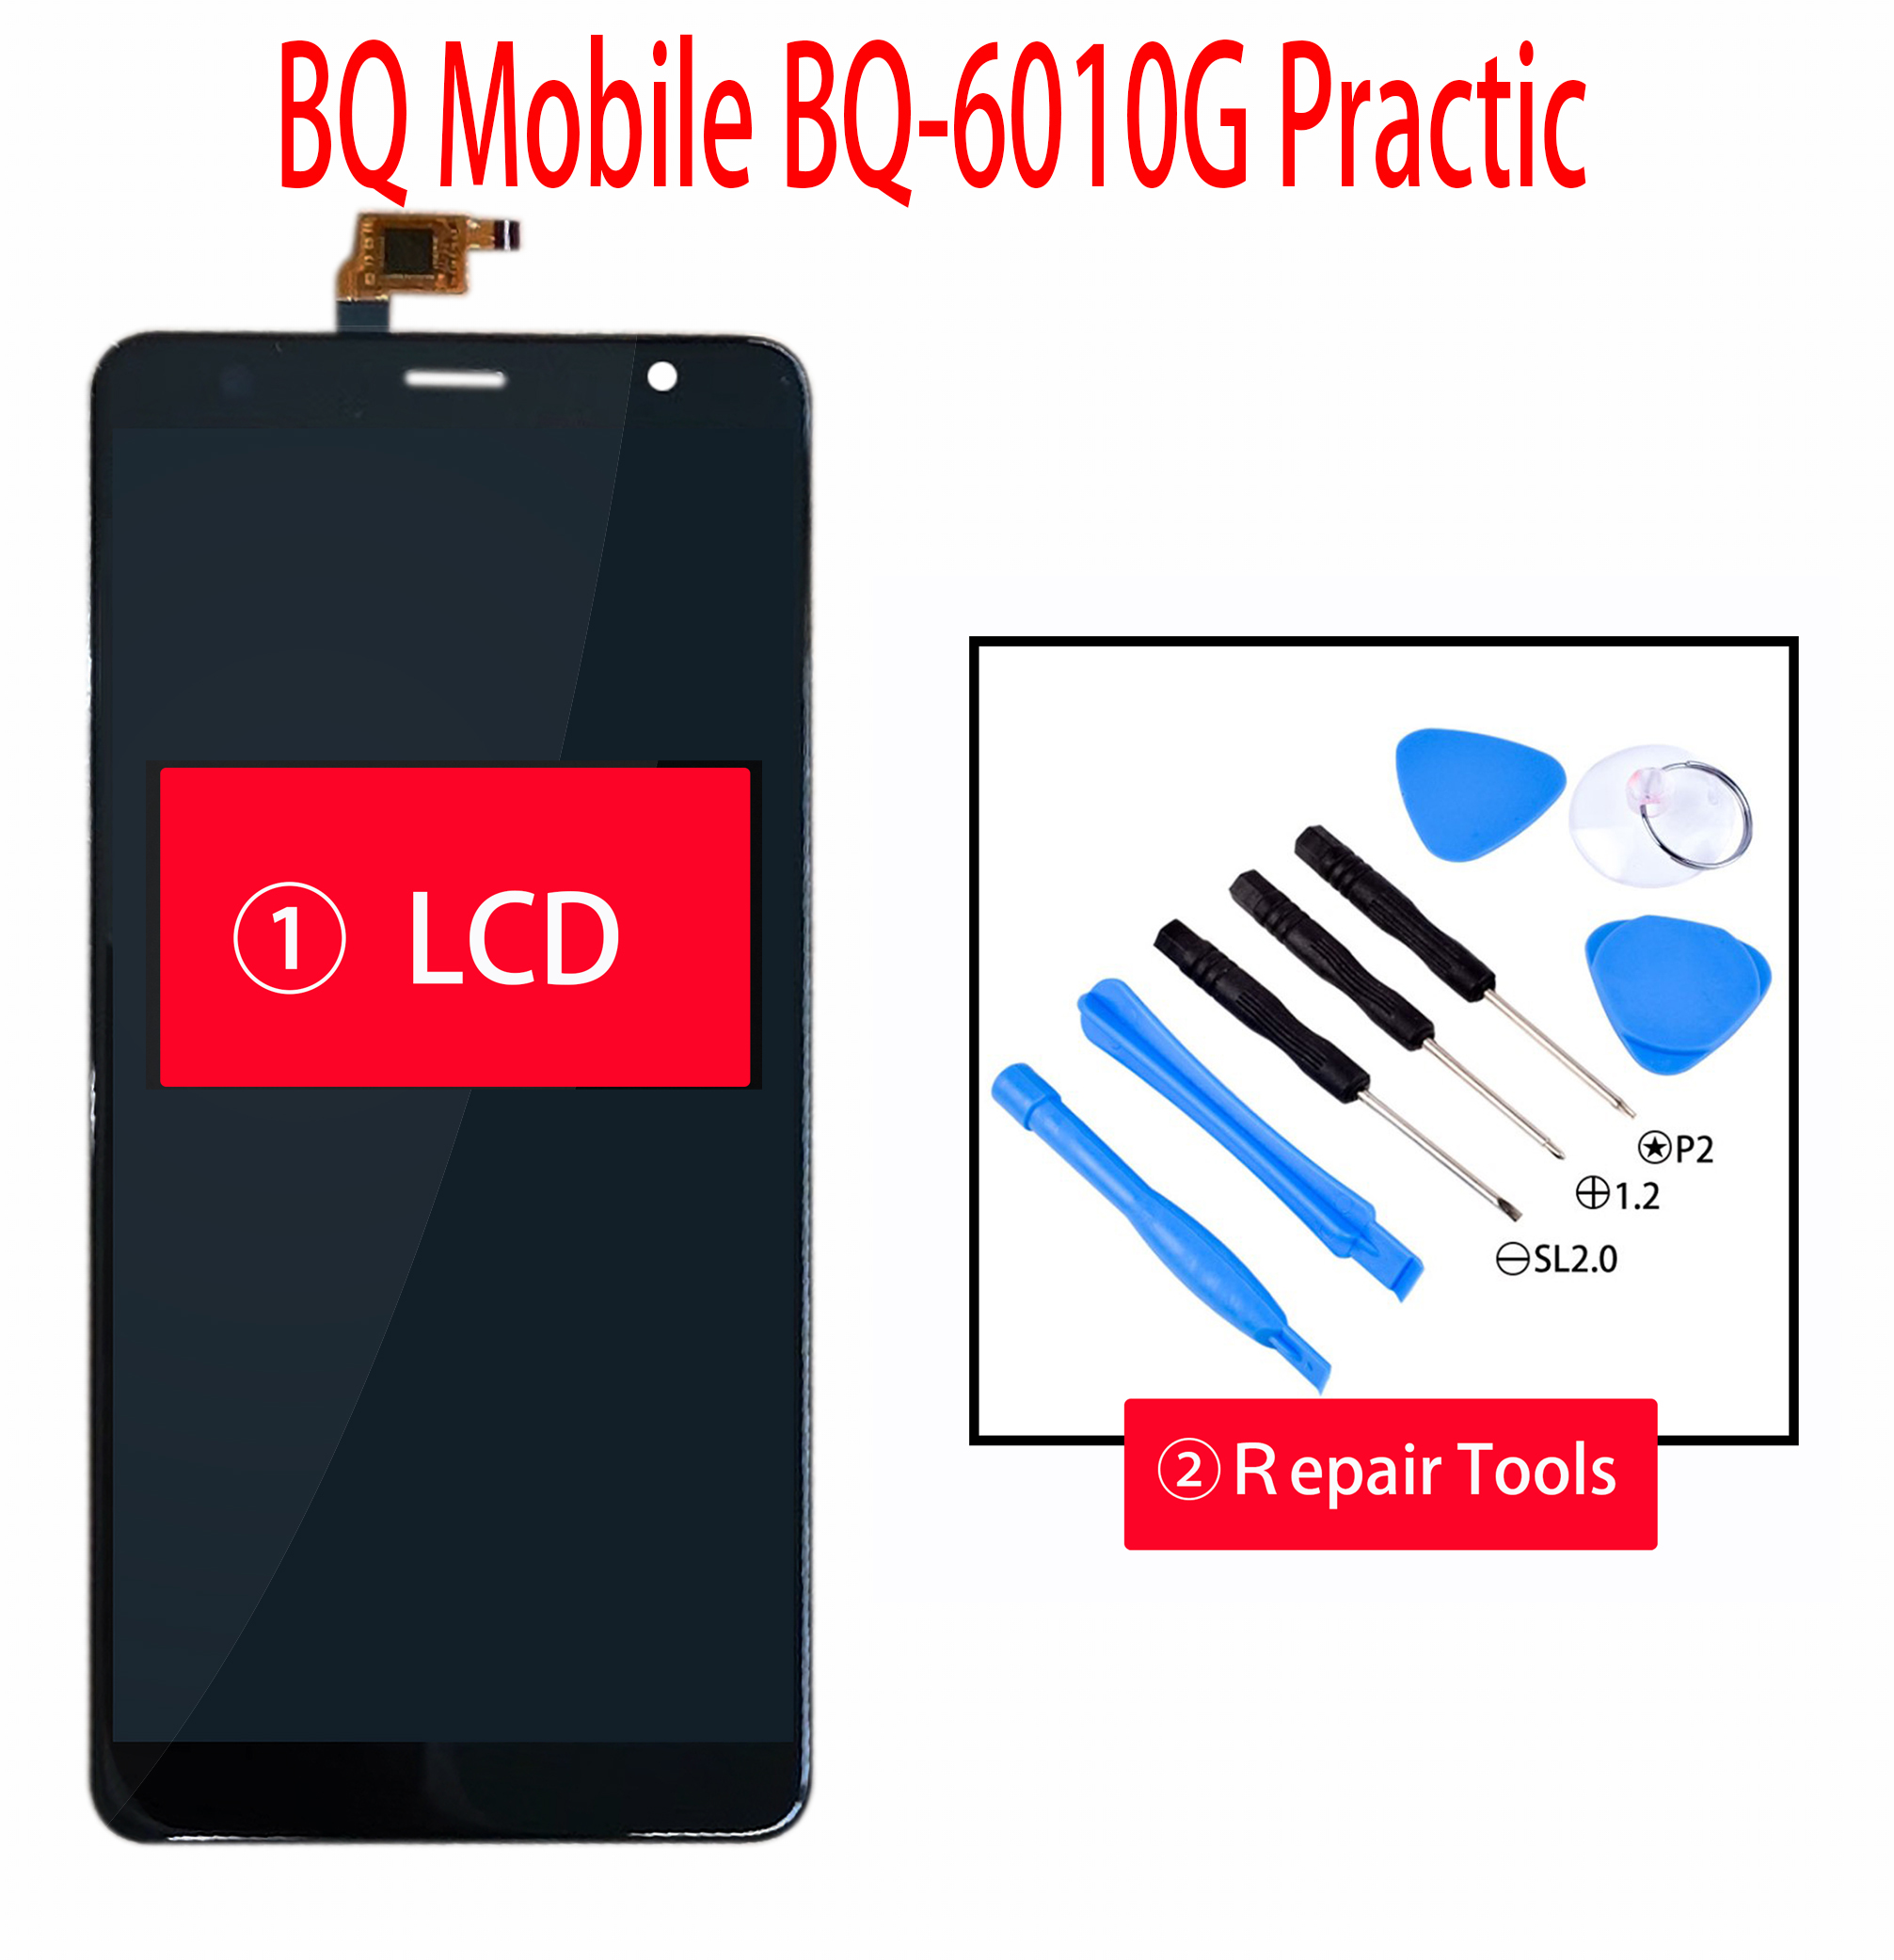 ORIGINAL 6.0 Inch For <font><b>BQ</b></font> Mobile <font><b>BQ</b></font>-<font><b>6010G</b></font> Practic <font><b>BQ</b></font>-<font><b>6010G</b></font> <font><b>BQ</b></font>-6010 LCD Display + Touch Screen Digiziter Assembly With Tools image